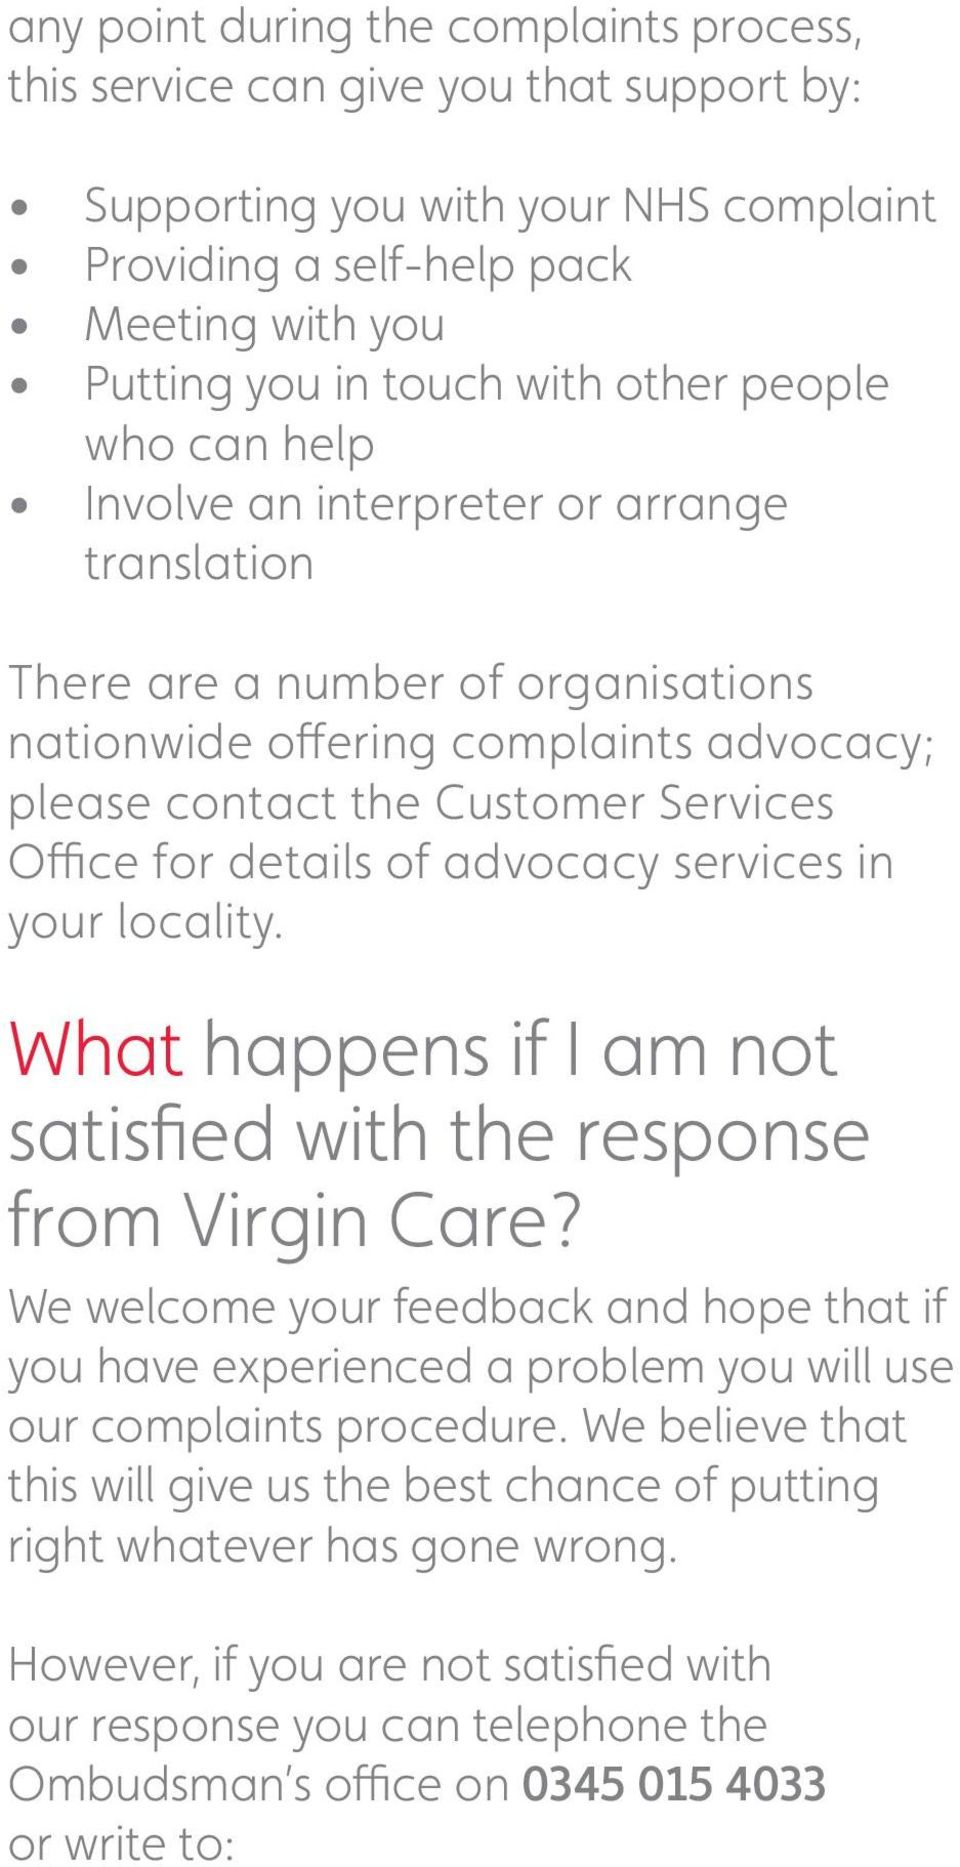 of advocacy services in your locality. What happens if I am not satisfied with the response from Virgin Care?